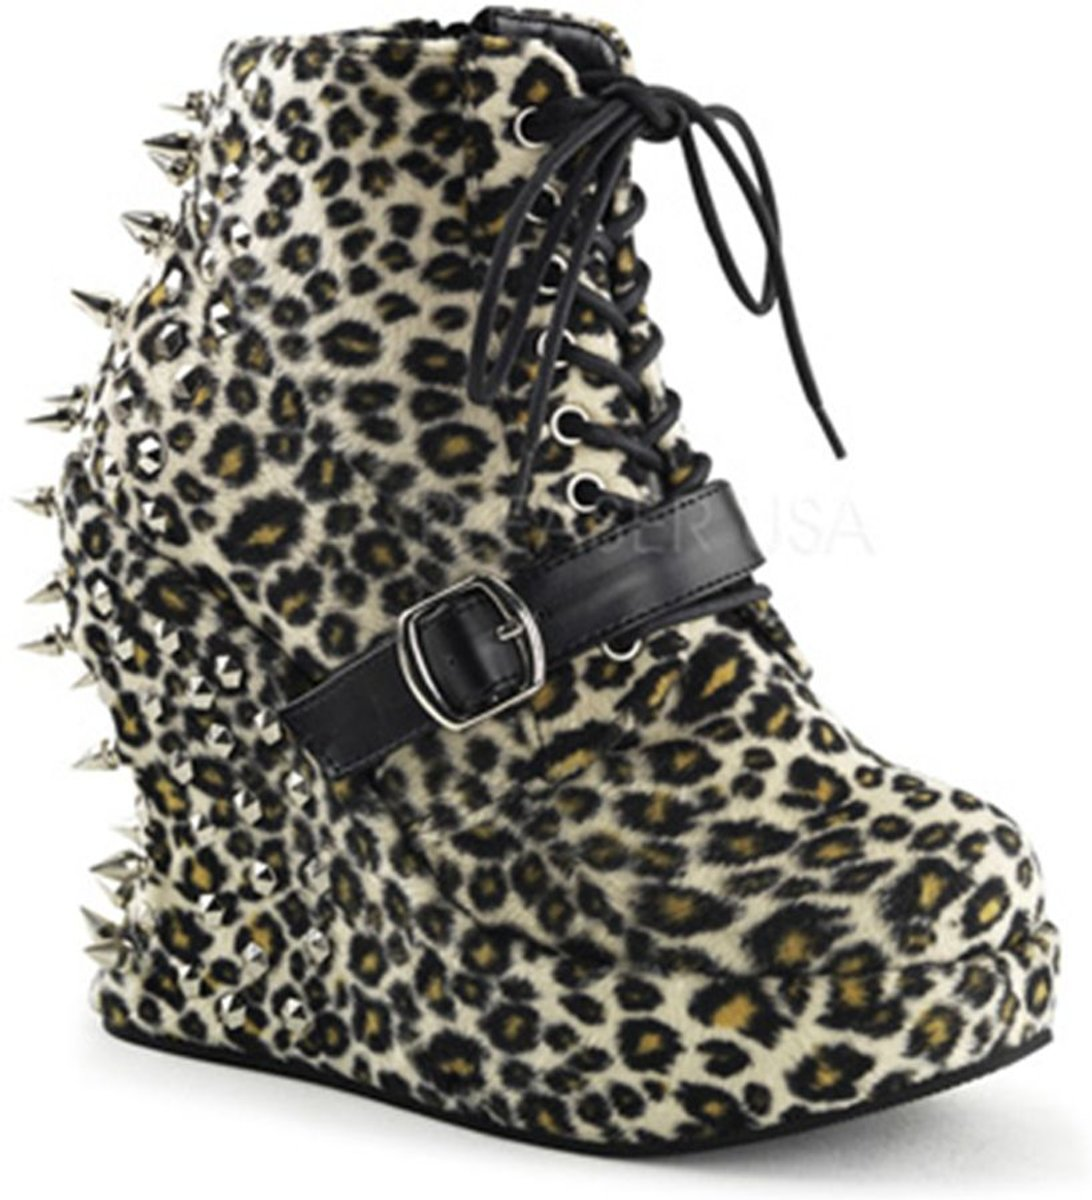 Bravo 23 Ankle boot with wedge and stud detail leopard print (EU 36 = US 6) Demonia